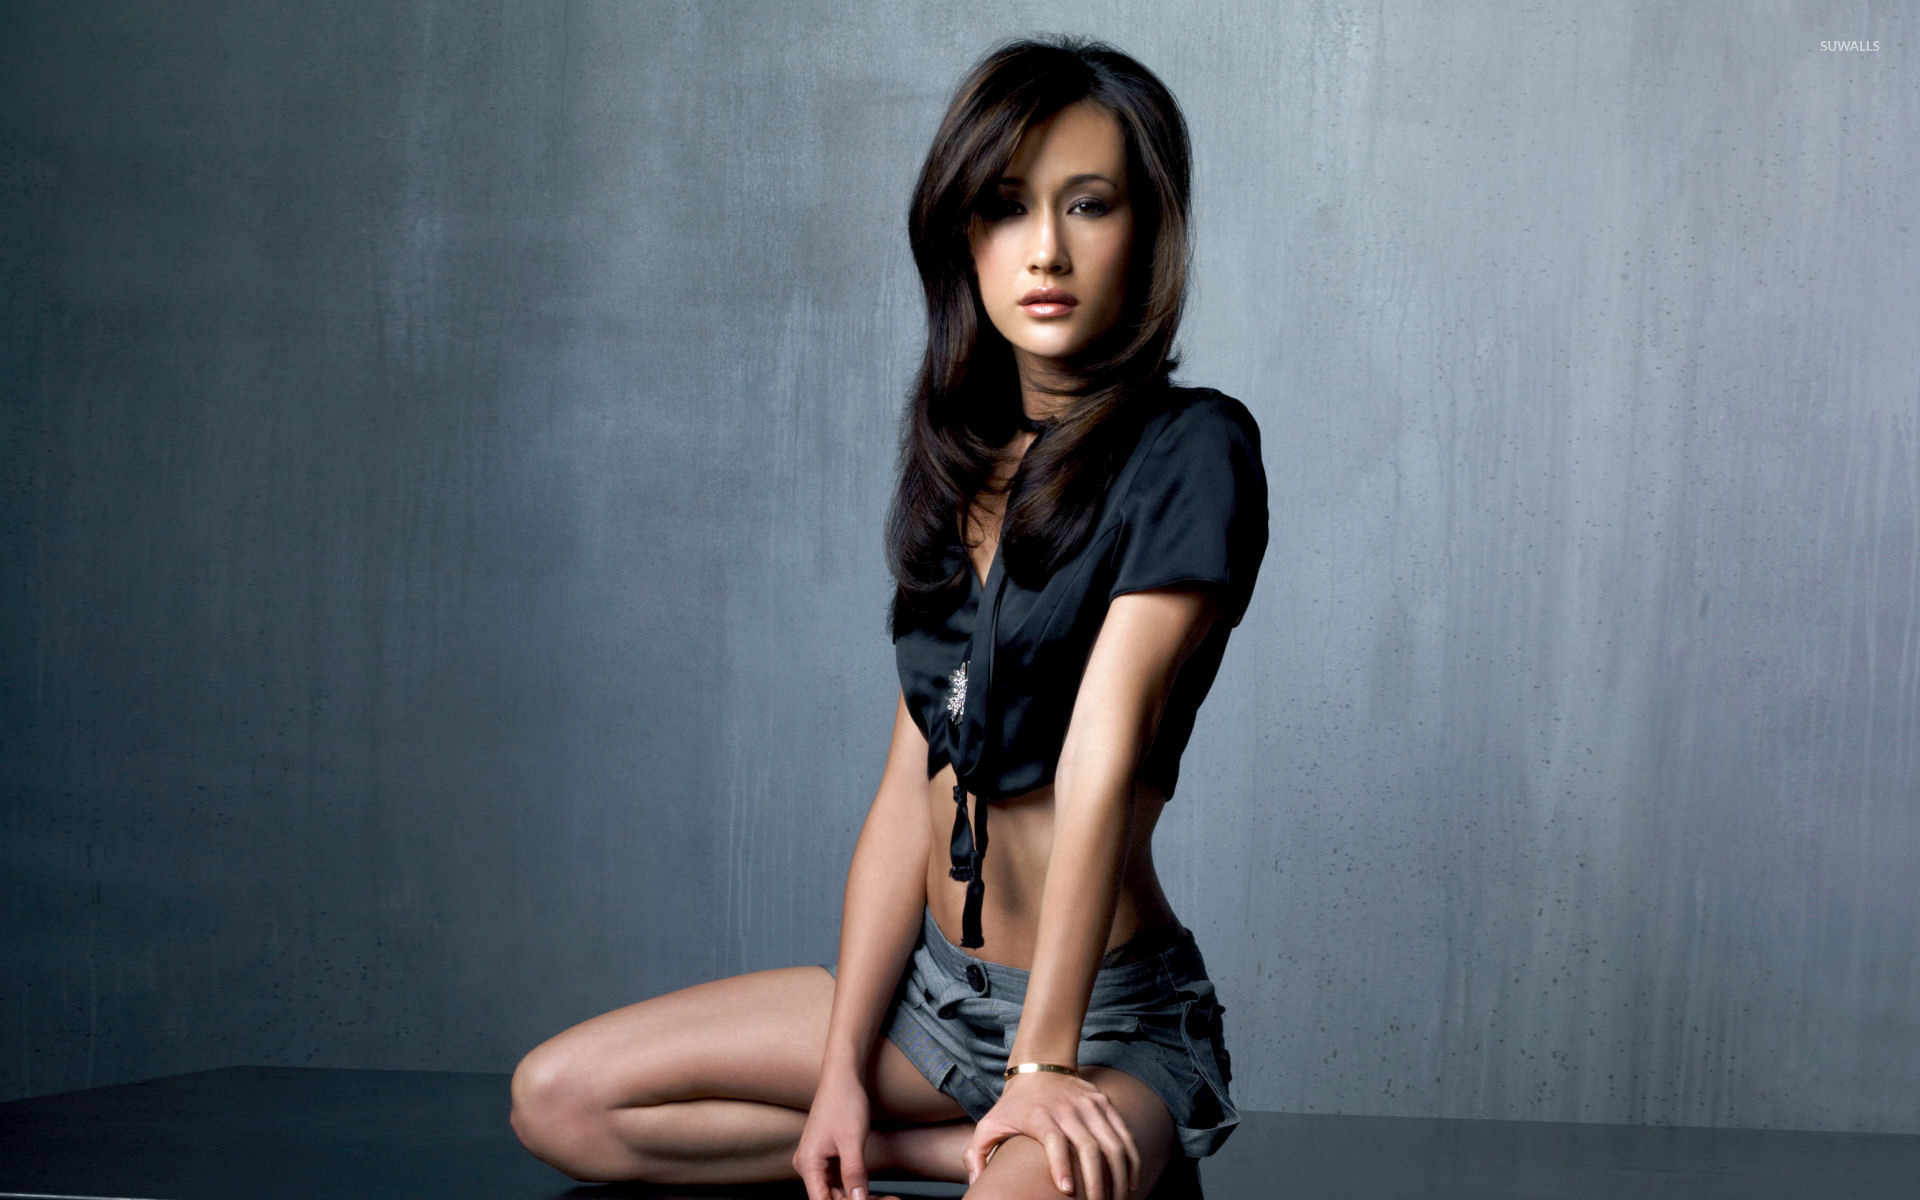 1920x1200 - Maggie Q Wallpapers 23